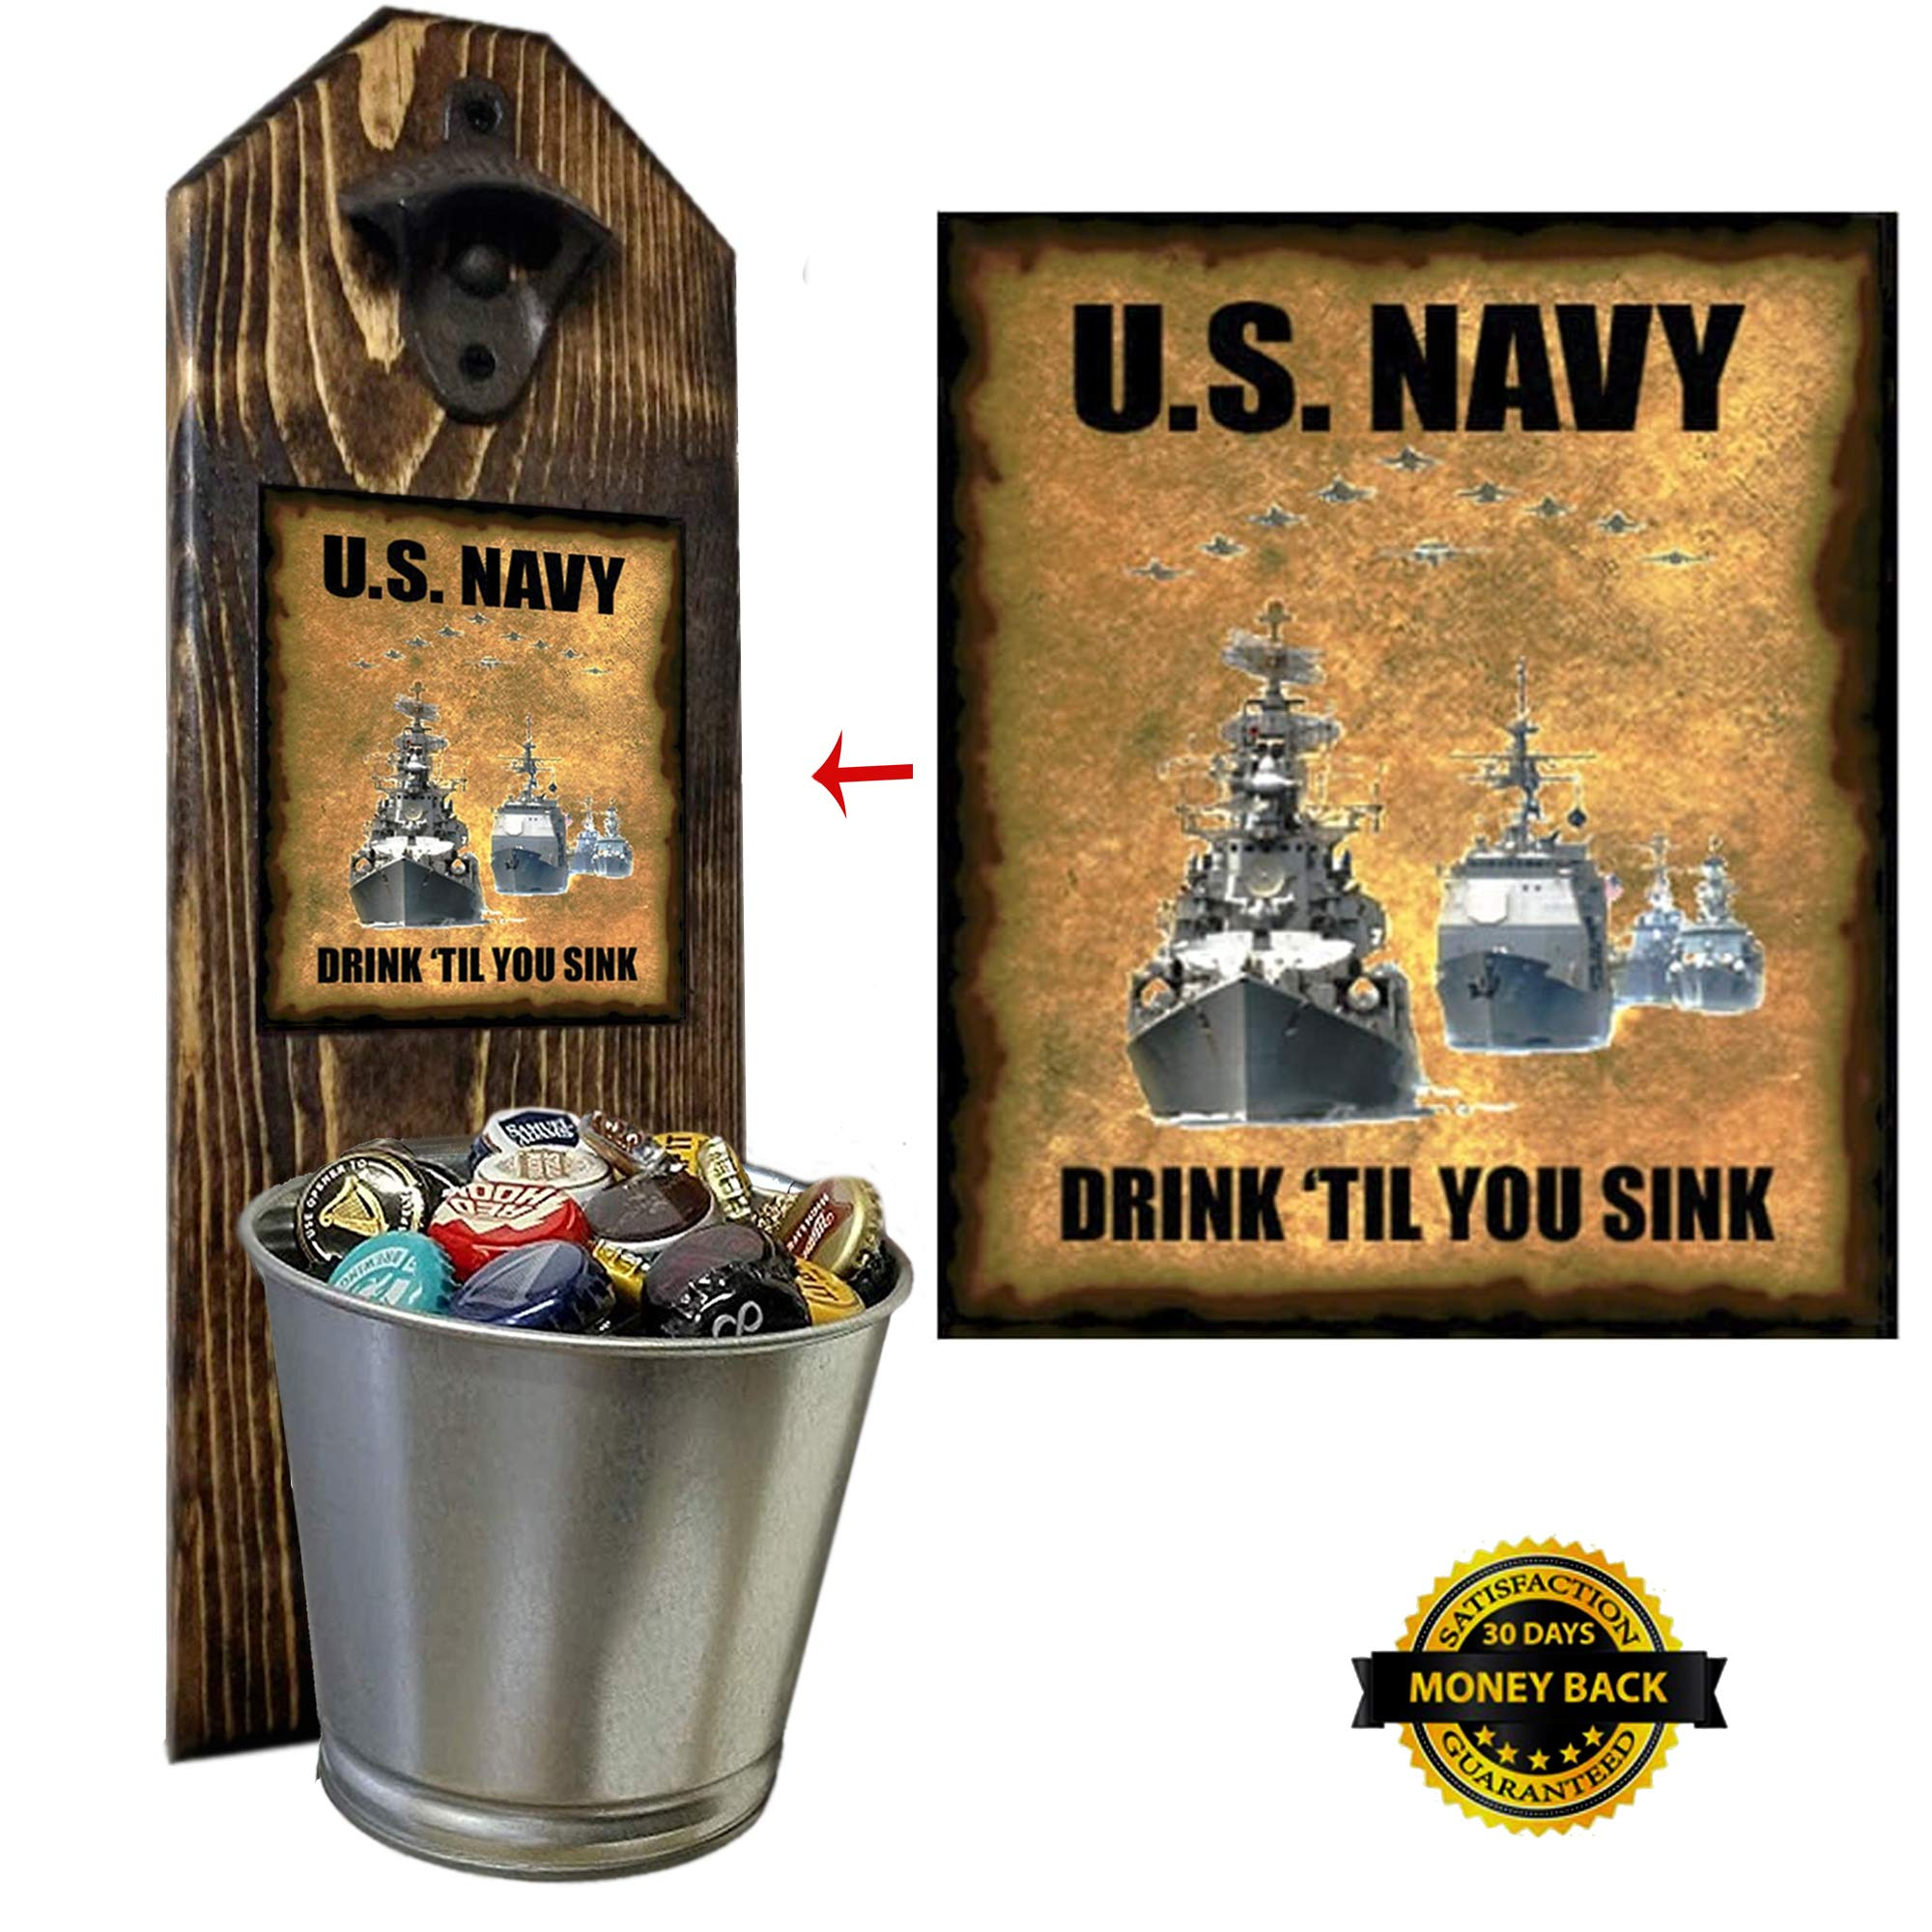 ''U.S. Navy - Drink 'Til You Sink'' Bottle Opener and Cap Catcher - Handcrafted by a Vet - Made of 100% Solid Pine 3/4'' Thick - Rustic Cast Iron Bottle Opener and Sturdy Mini Galvanized Bucket